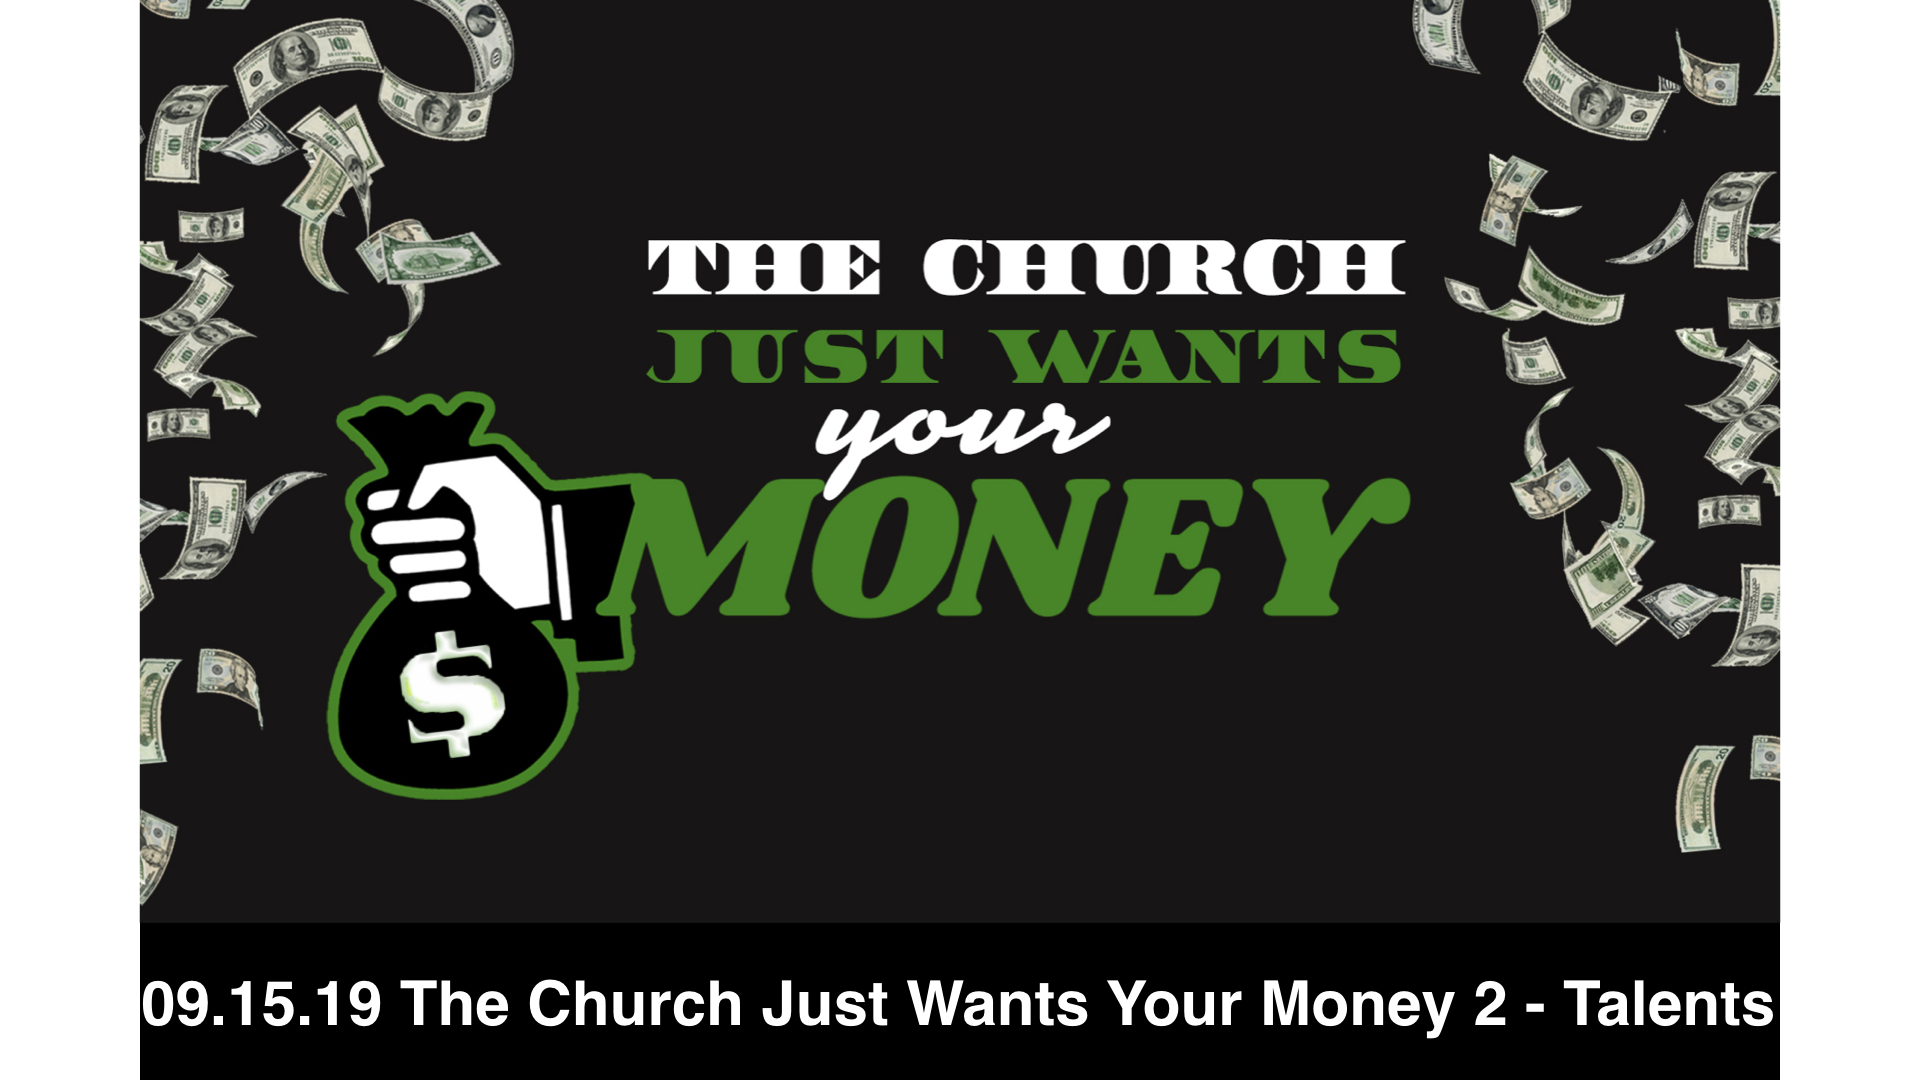 09.15.19 The Church Just Wants Your Money 2 - Talents